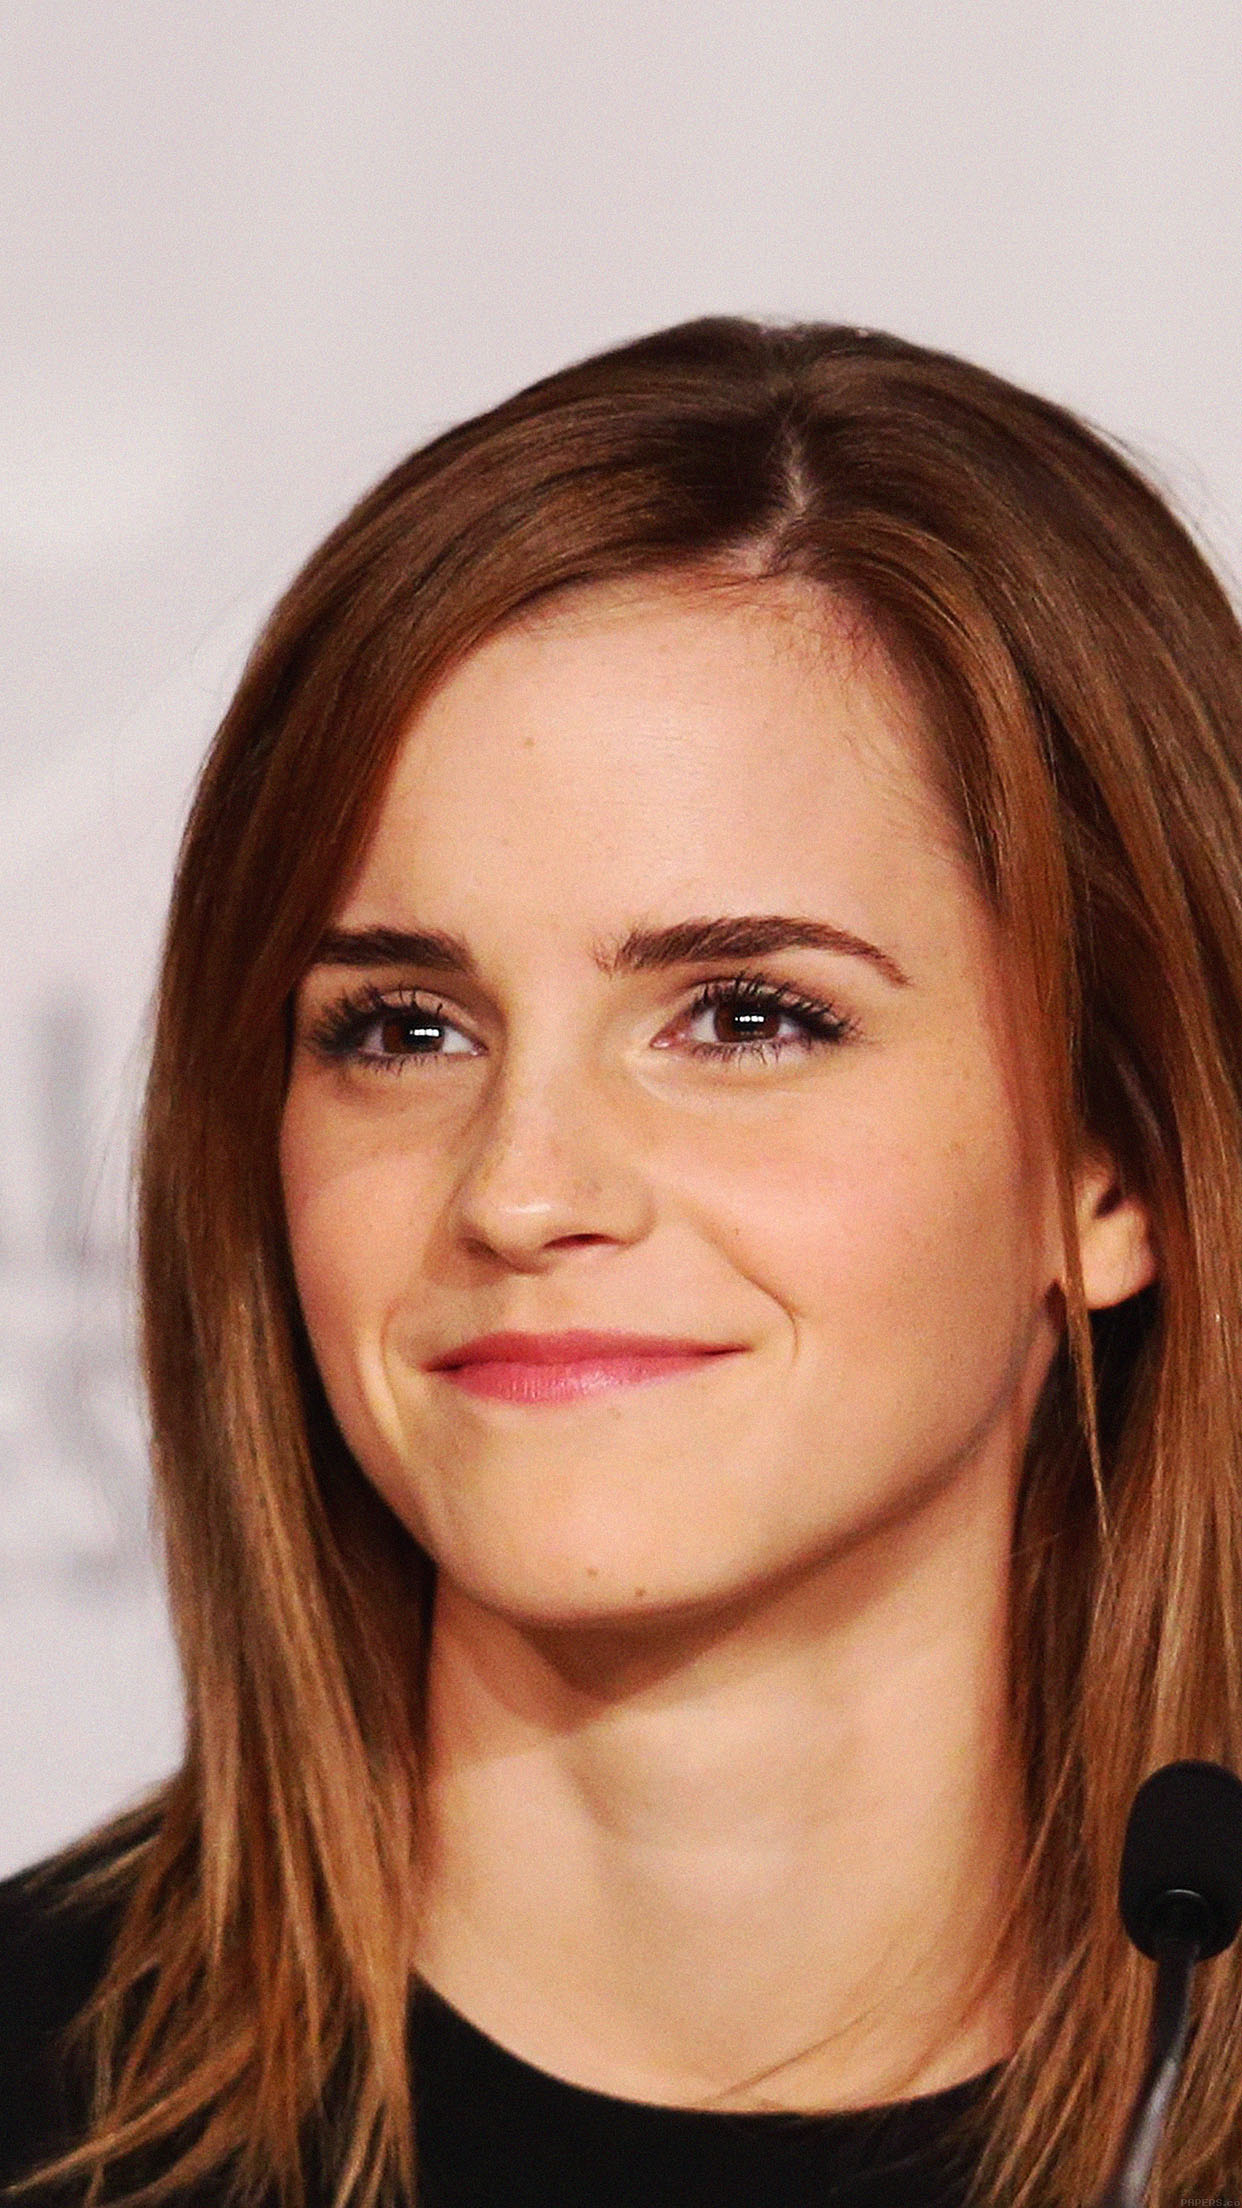 iphone6papers - hb36-wallpaper-emma-watson-smile-cannes-film-girl